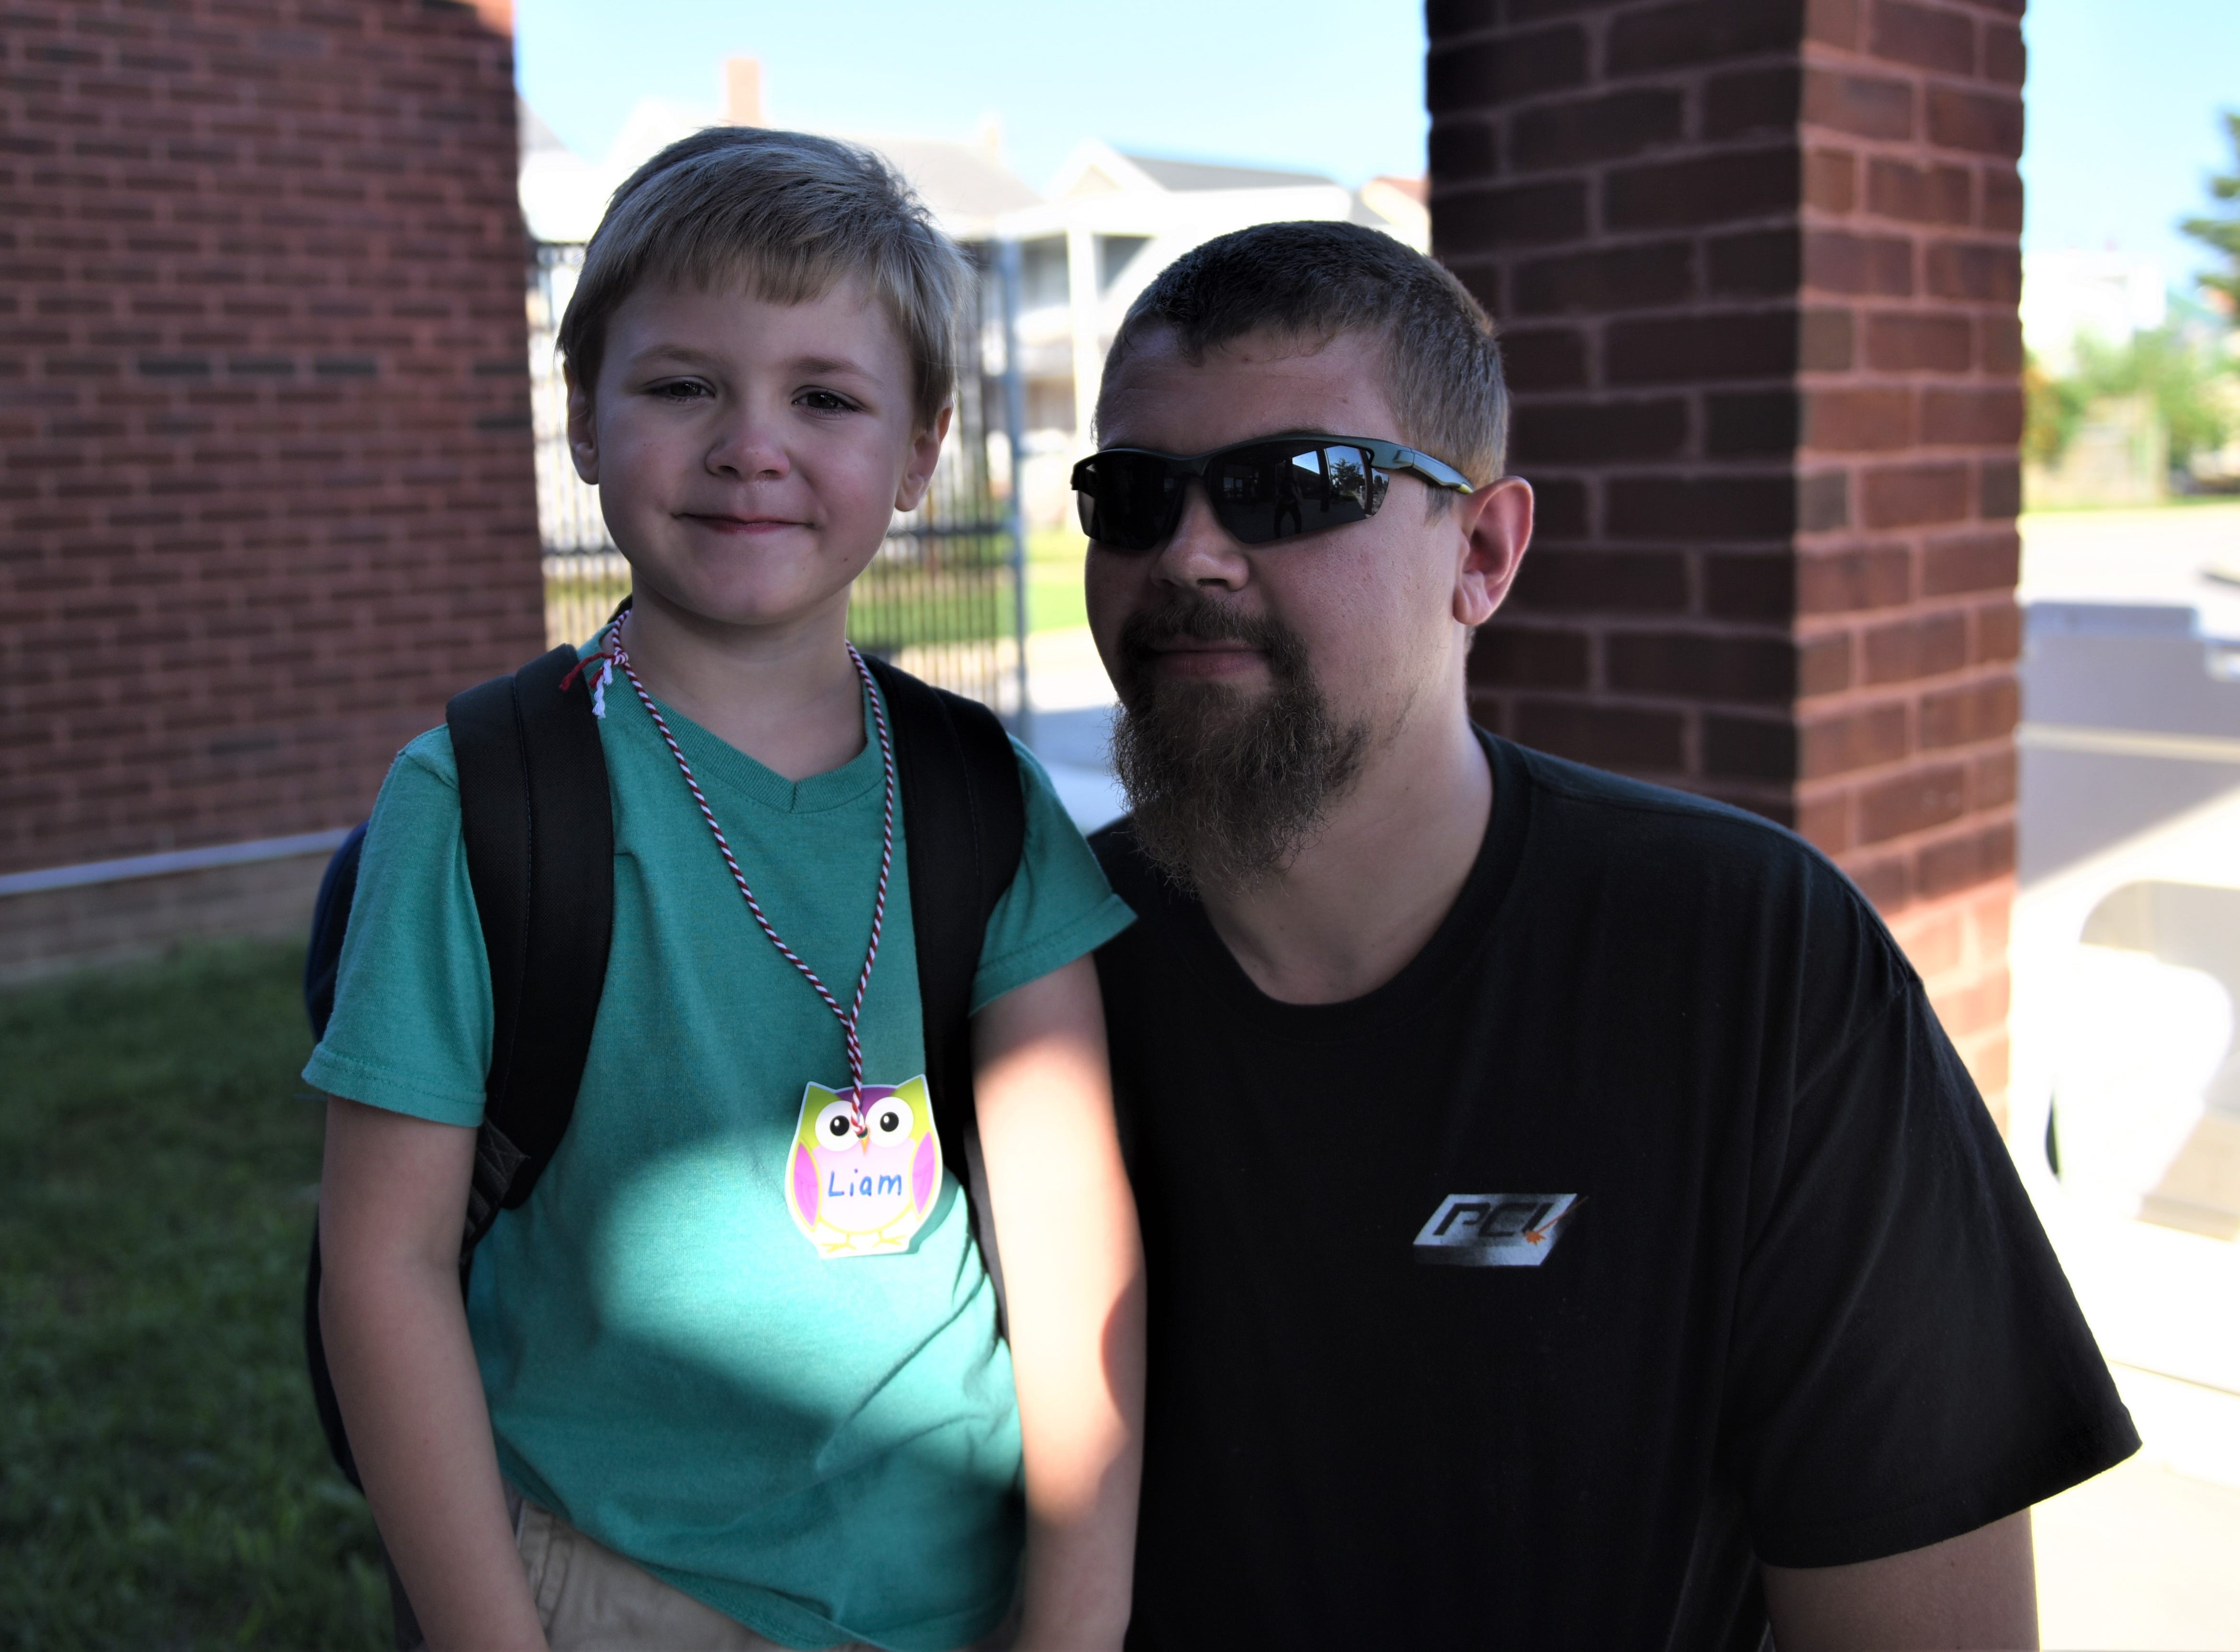 Liam Griffie and his dad were saying goodbye on Liam's first day of kindergarten at Hanover Street Elementary on Aug. 23.